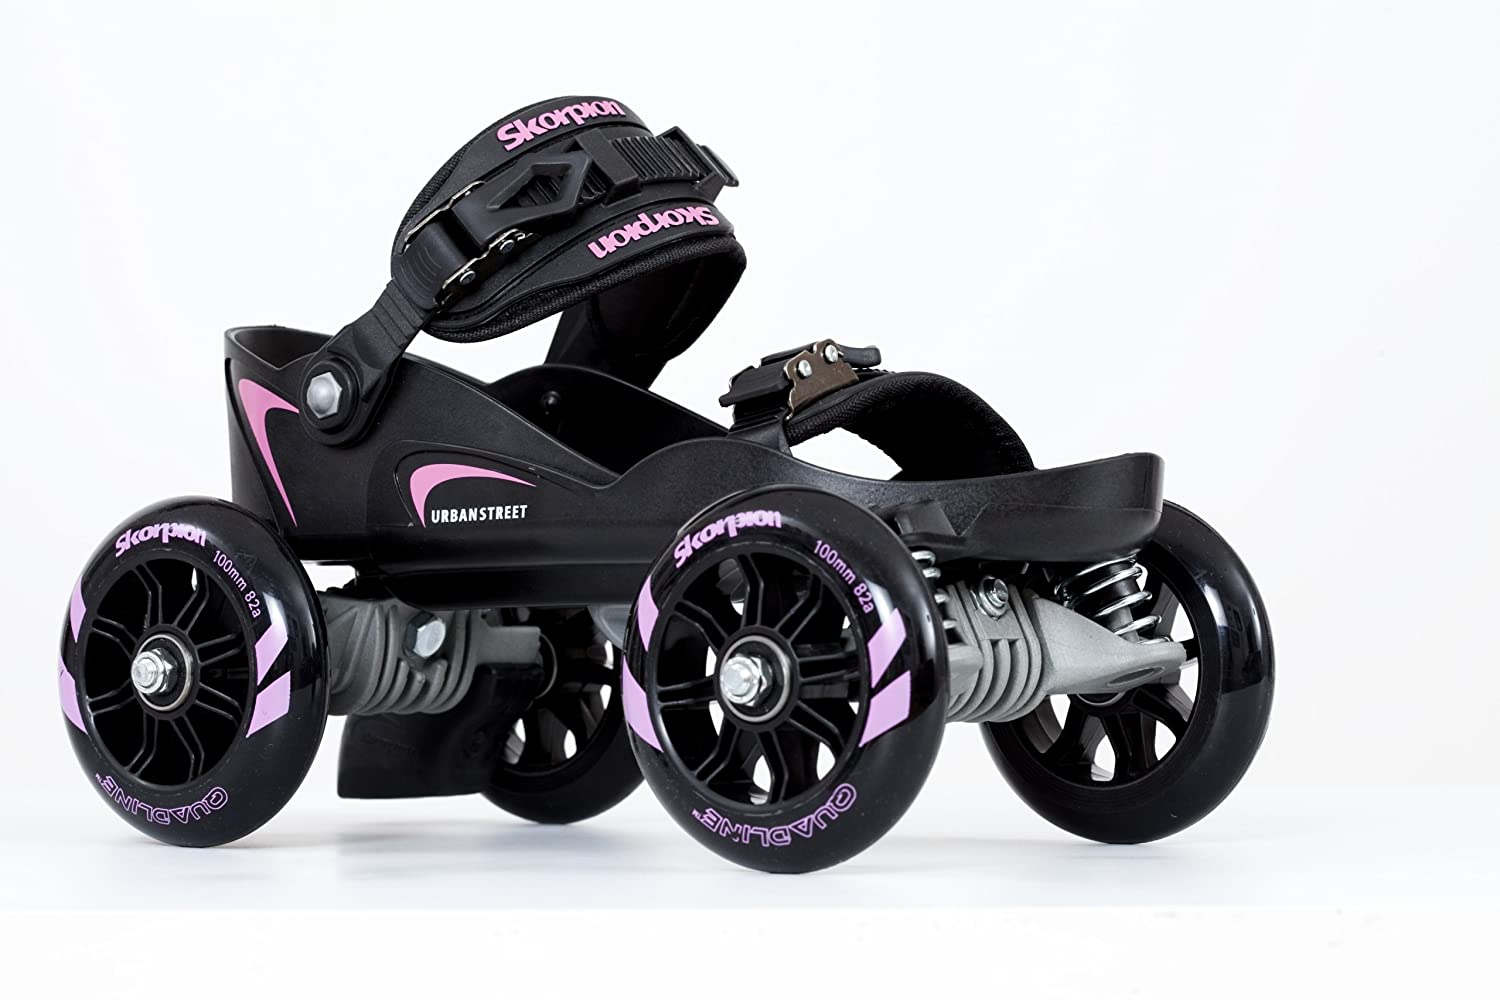 Amazon.com : Skorpion Quadline® Street Skates - Large Pink / Black : Childrens Inline Skates : Sports & Outdoors